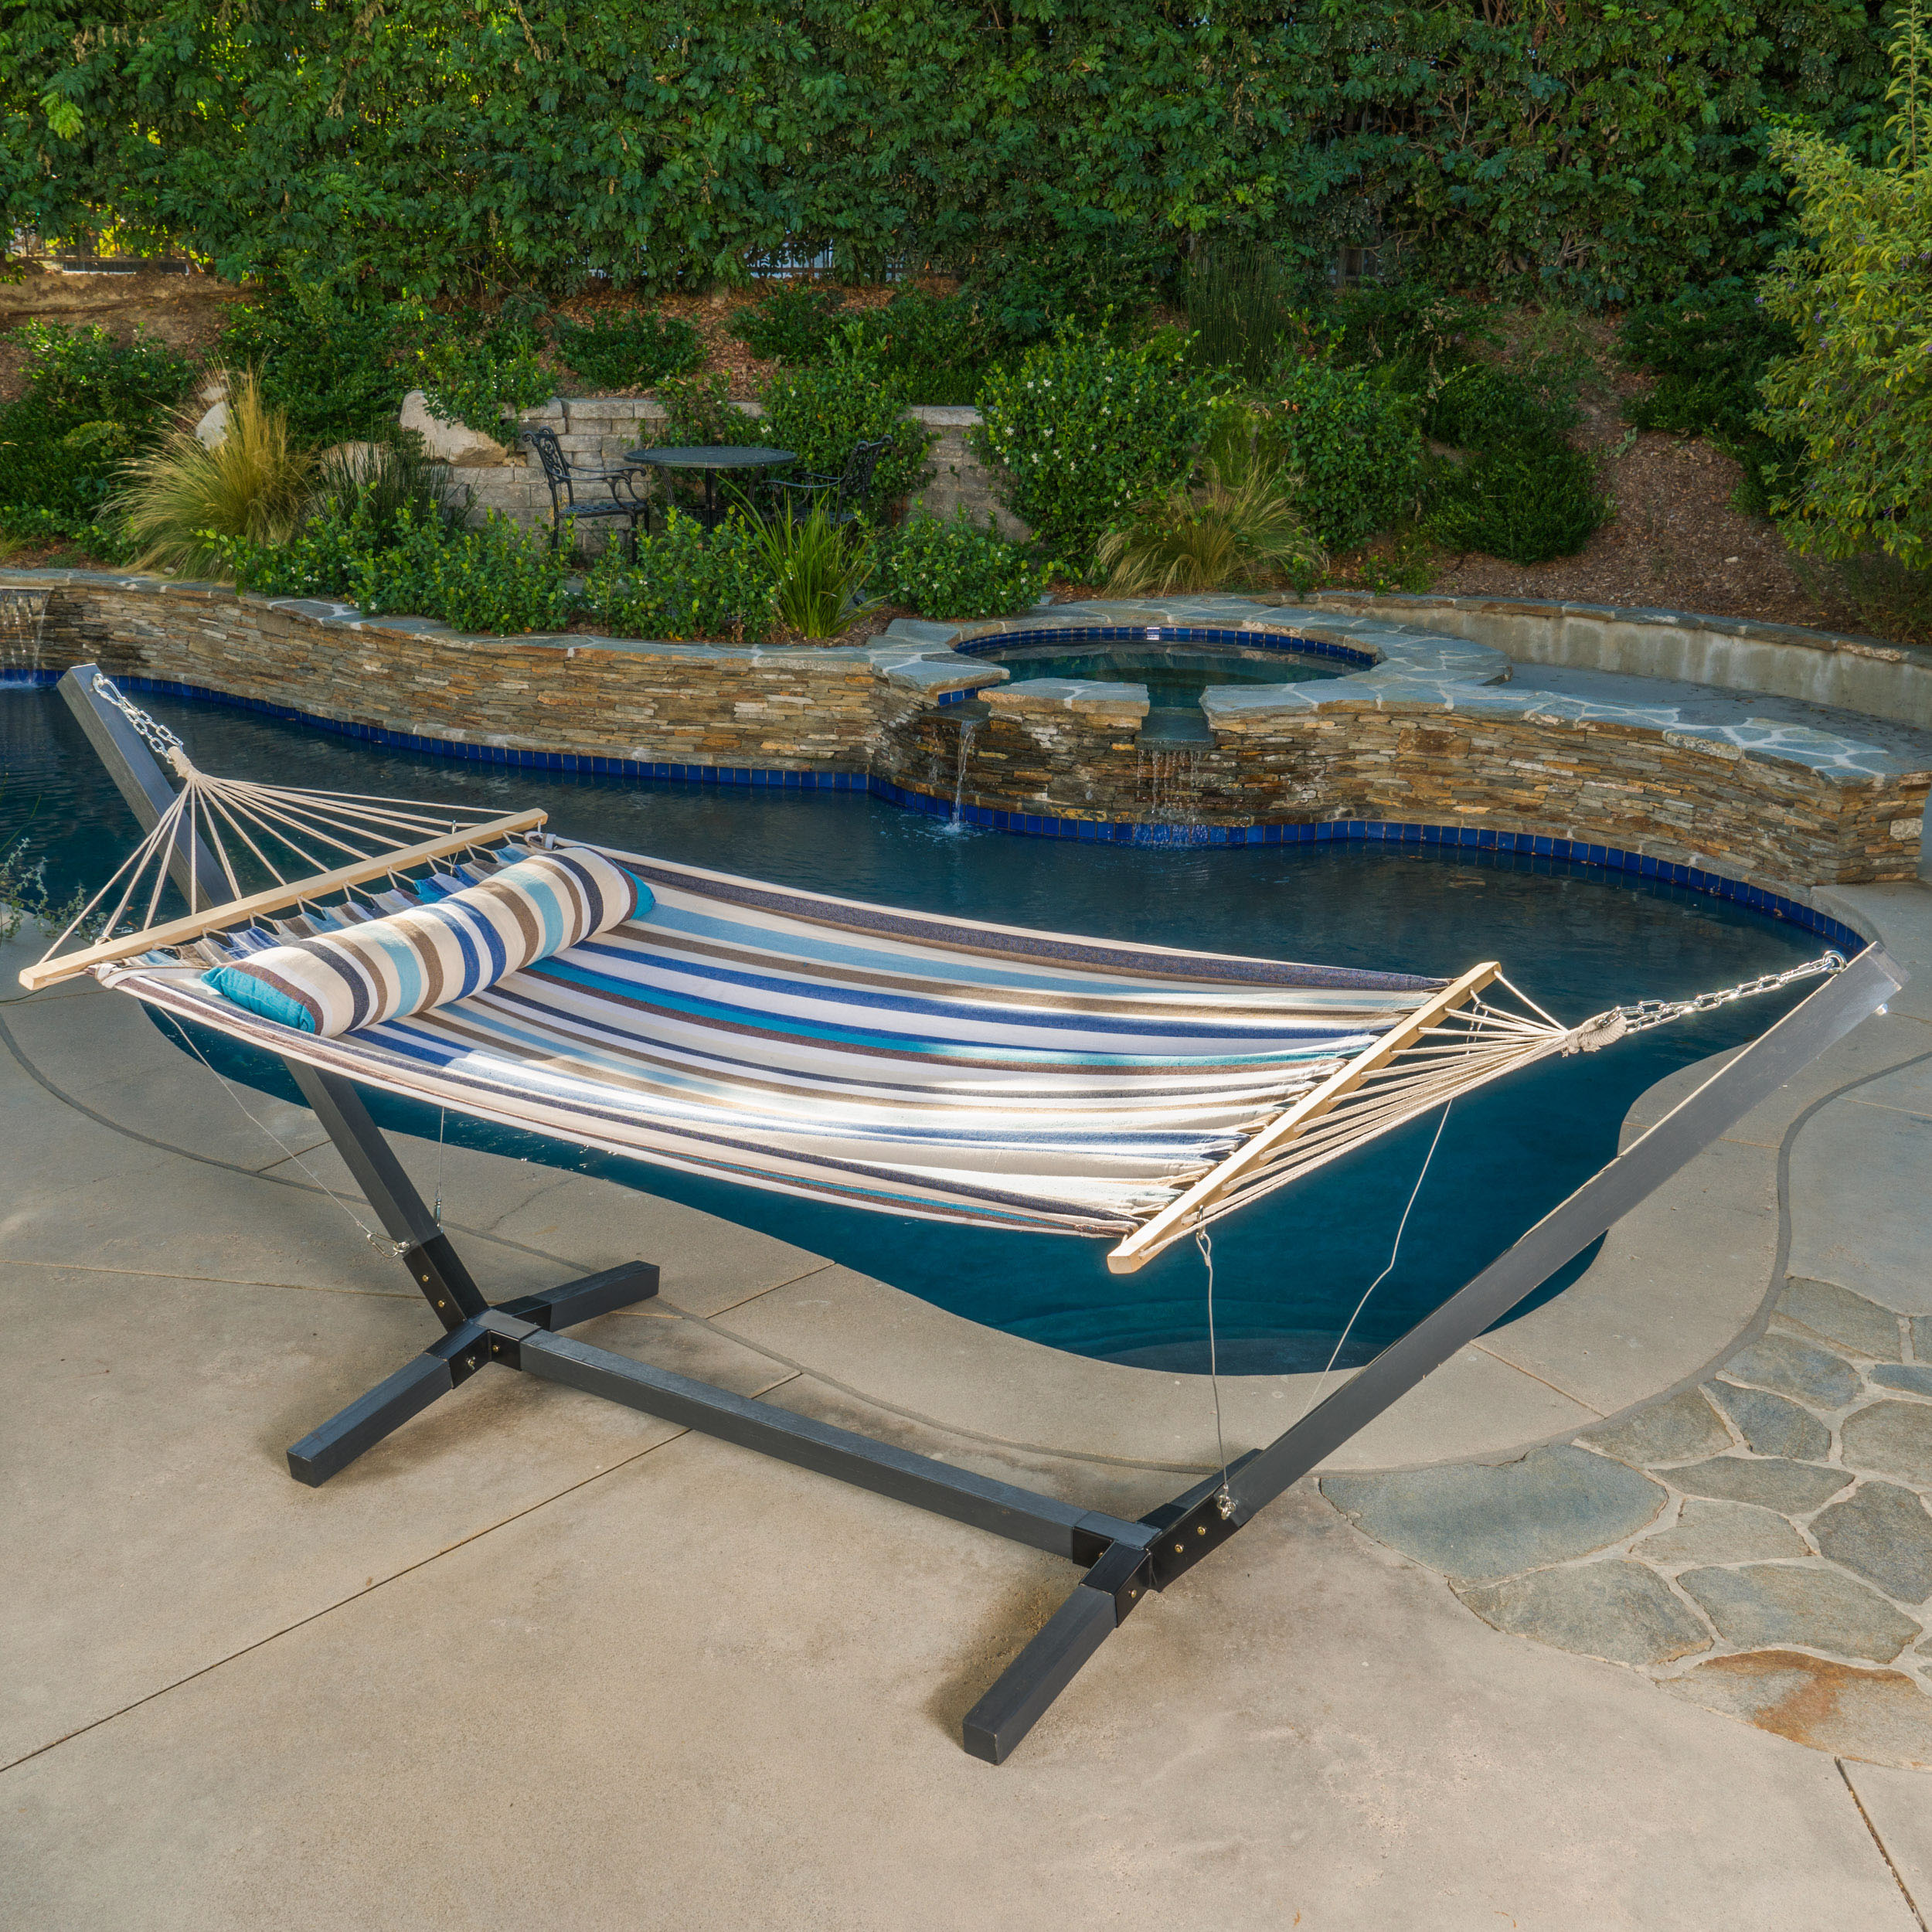 Amelia Outdoor Water Resistant Hammock with Grey Larch Wood Frame, Brown, Blue, White Striped